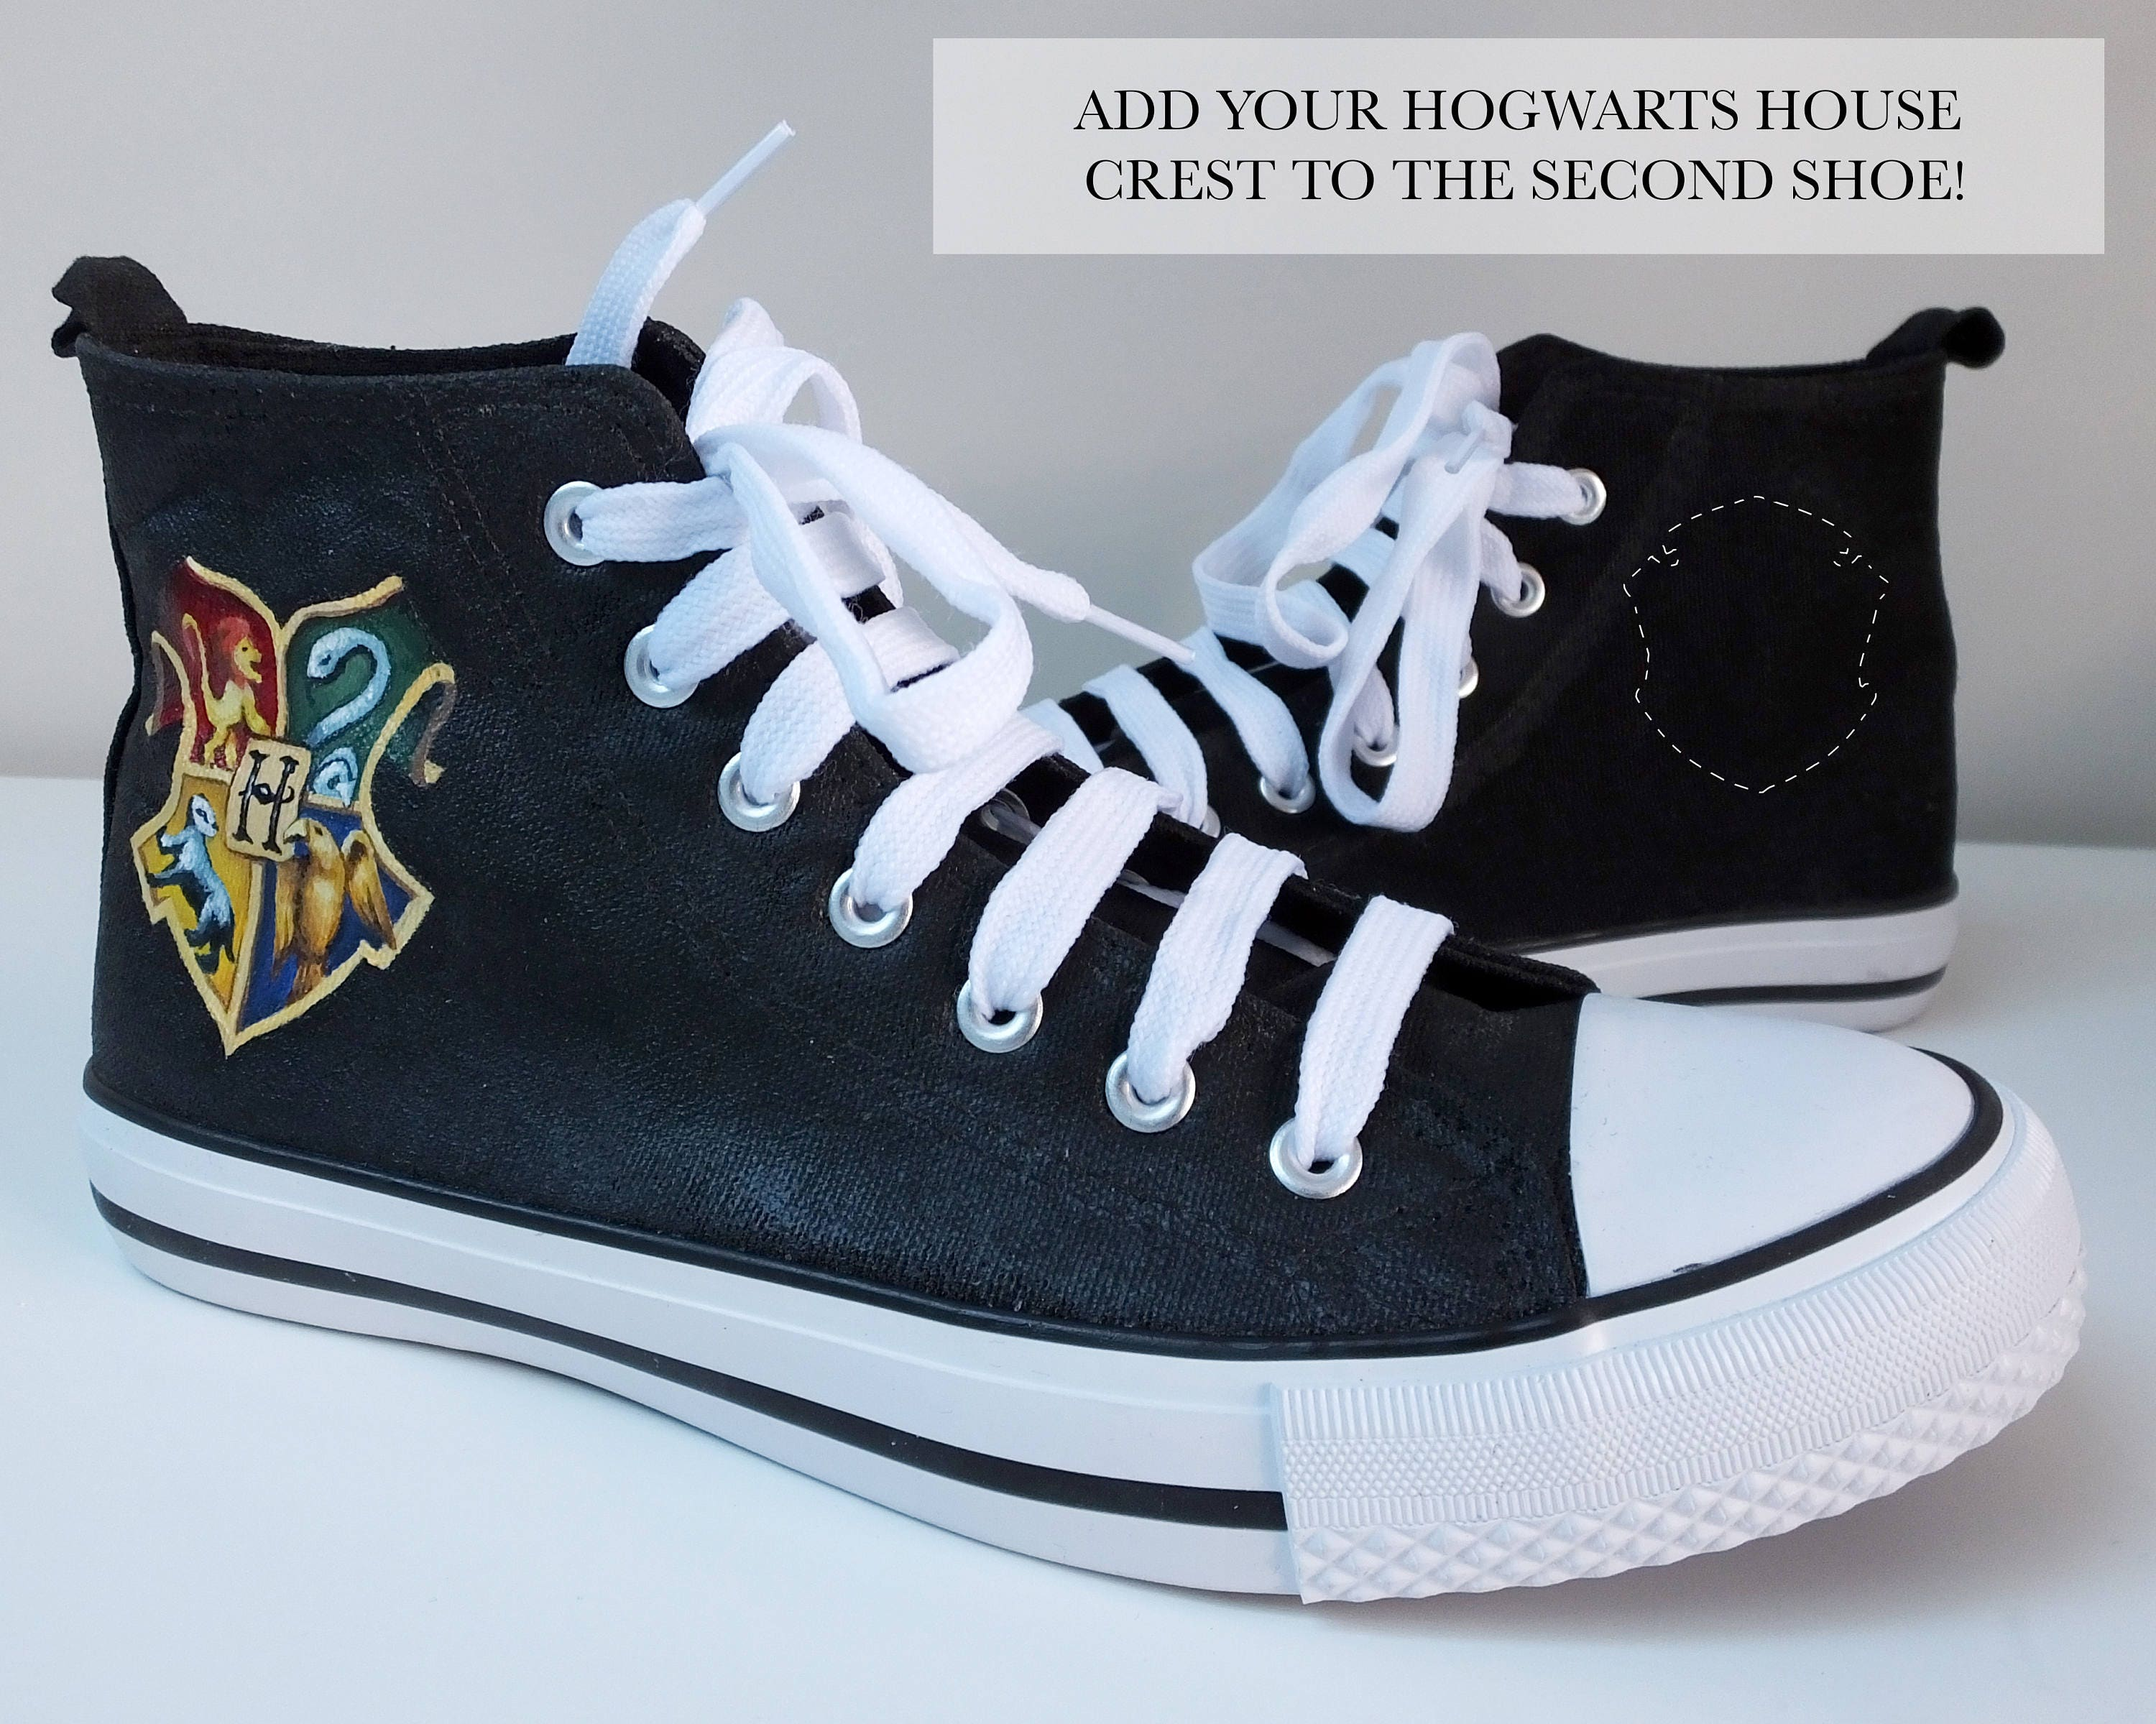 Harry Potter Hogwarts HandPainted ConverseStyle Shoes